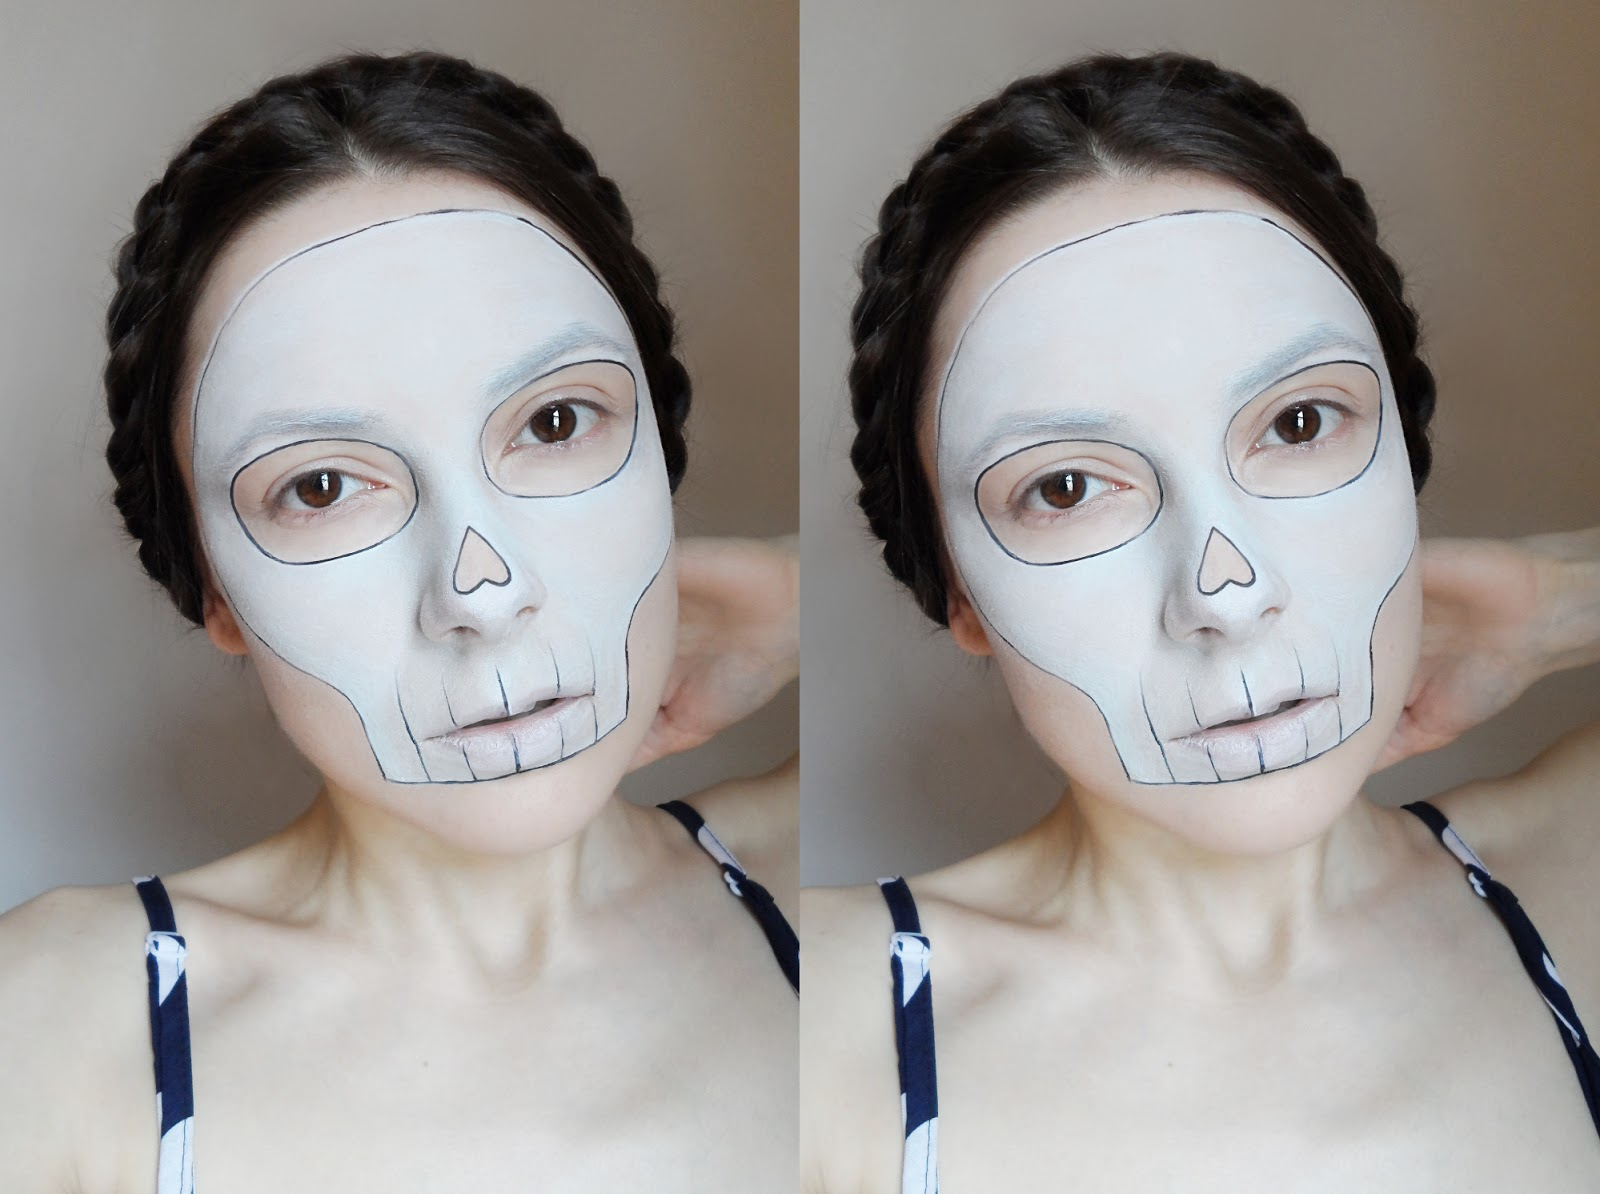 liz breygel january girl halloween makeup idea last minute tutorial skull makeup